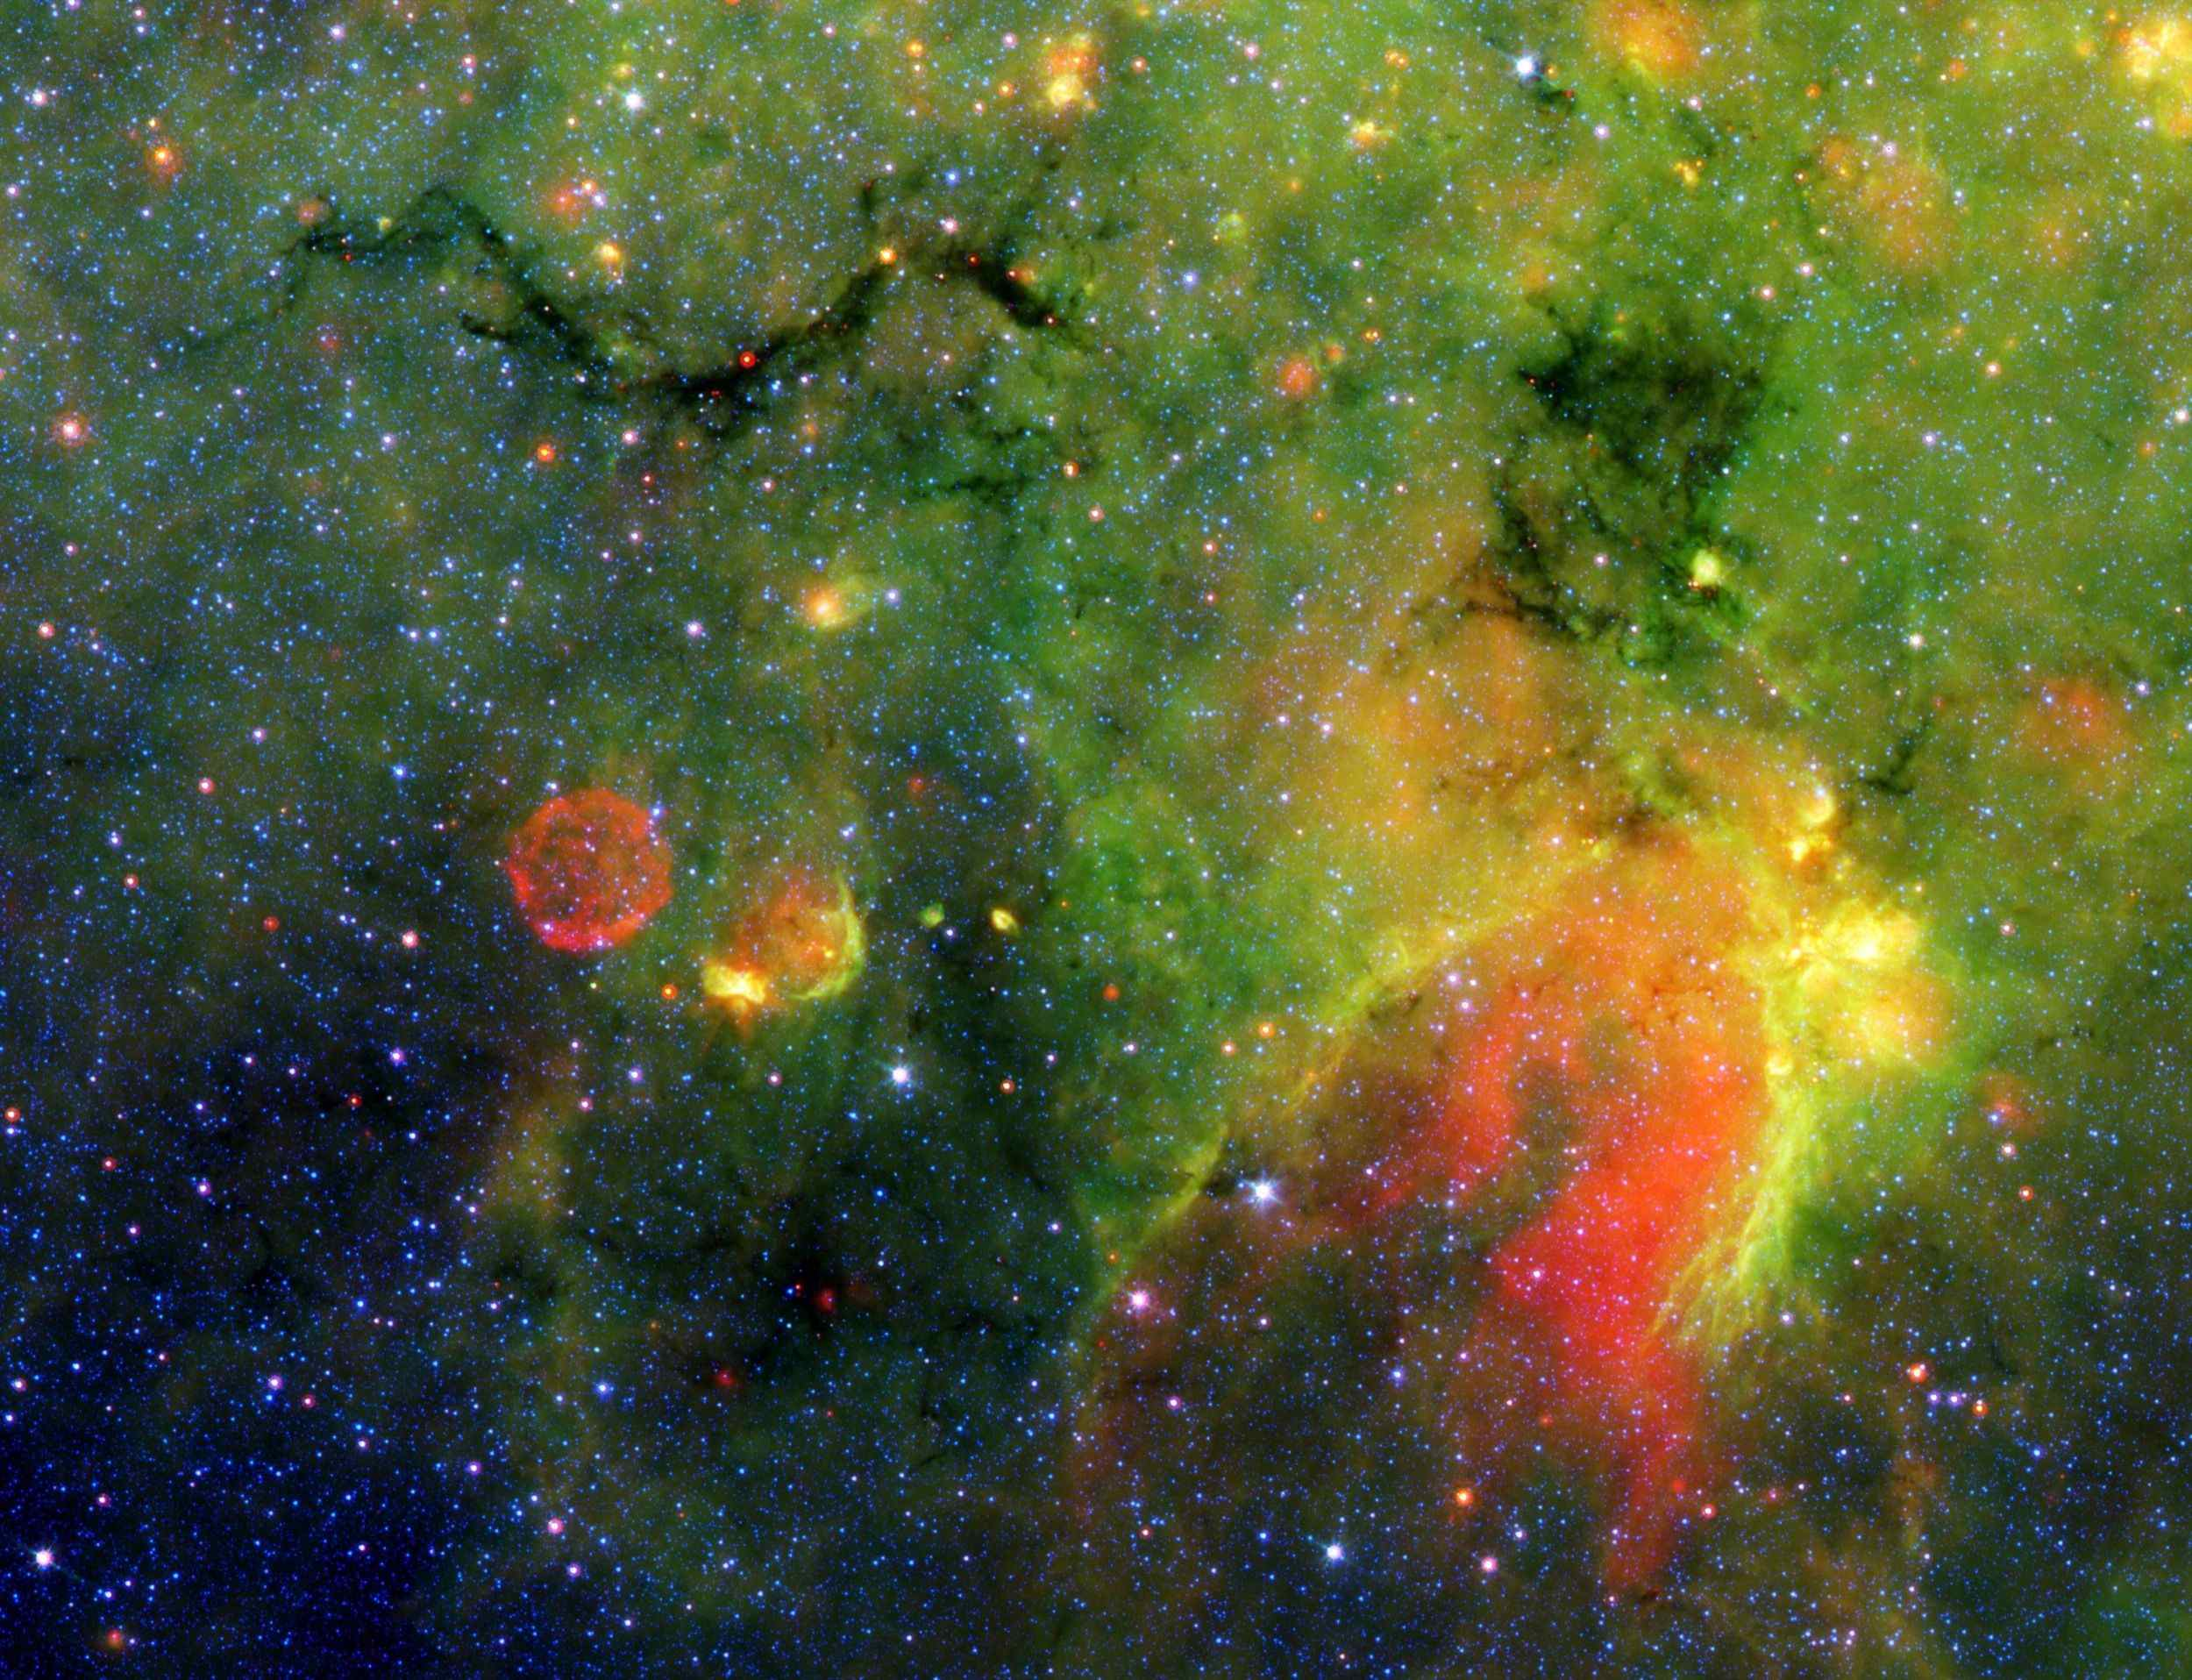 This infrared image from NASA's Spitzer Space Telescope shows what astronomers are referring to as a 'snake' (upper left) and its surrounding stormy environment.